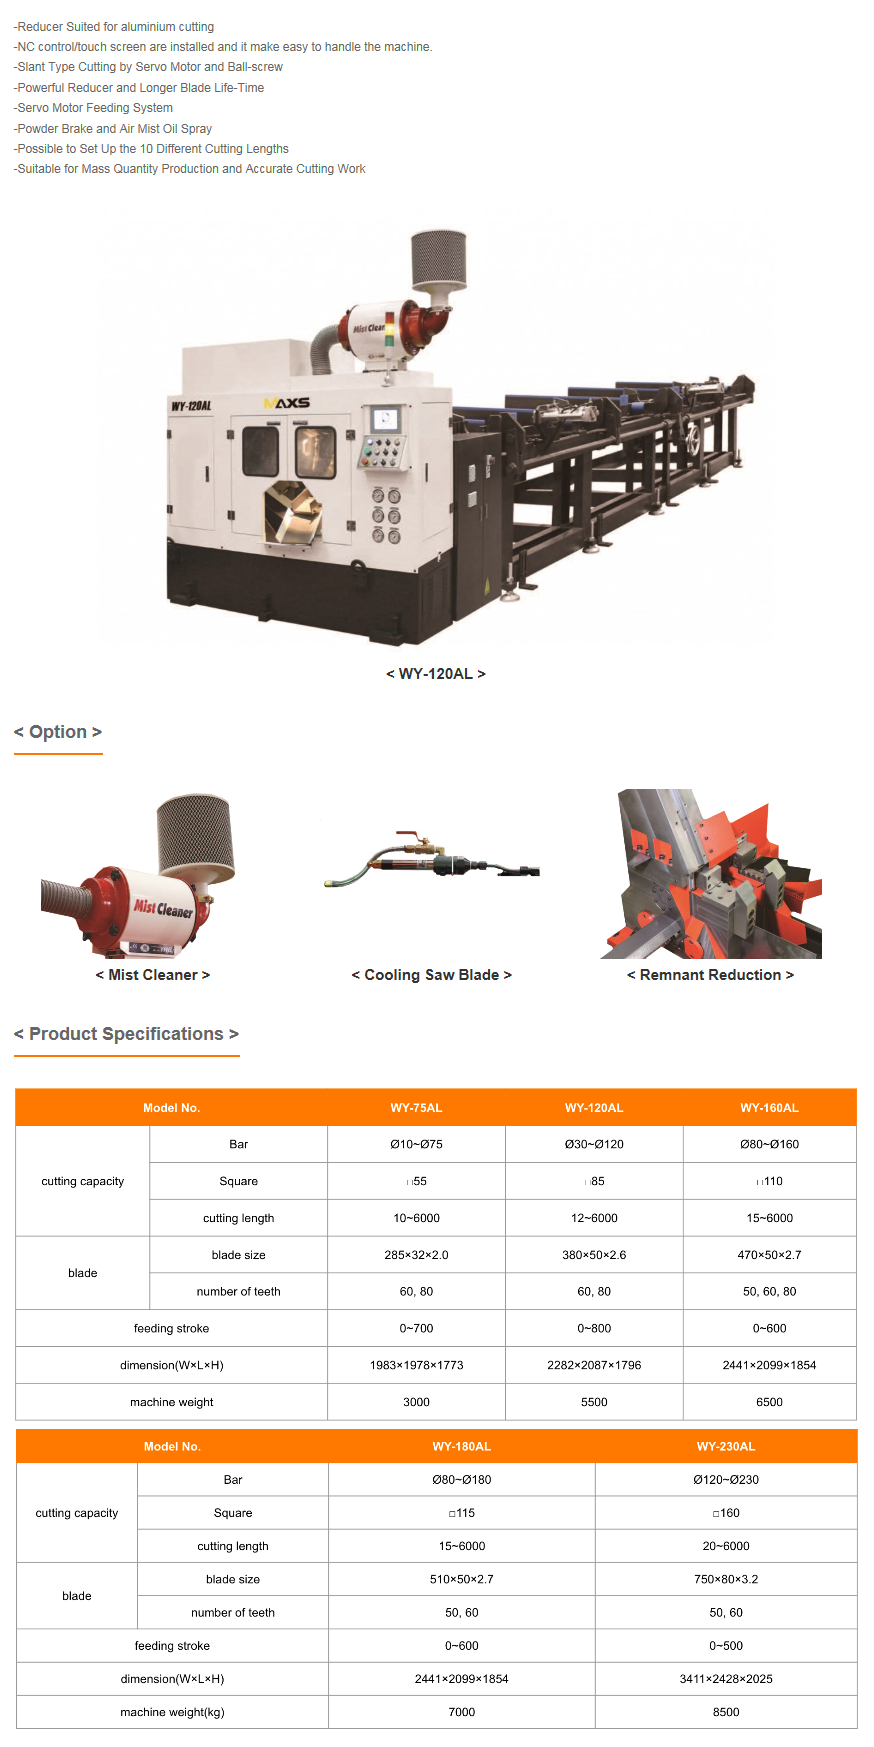 WOOYOUNG Circular Saw Machine WY-AL Series